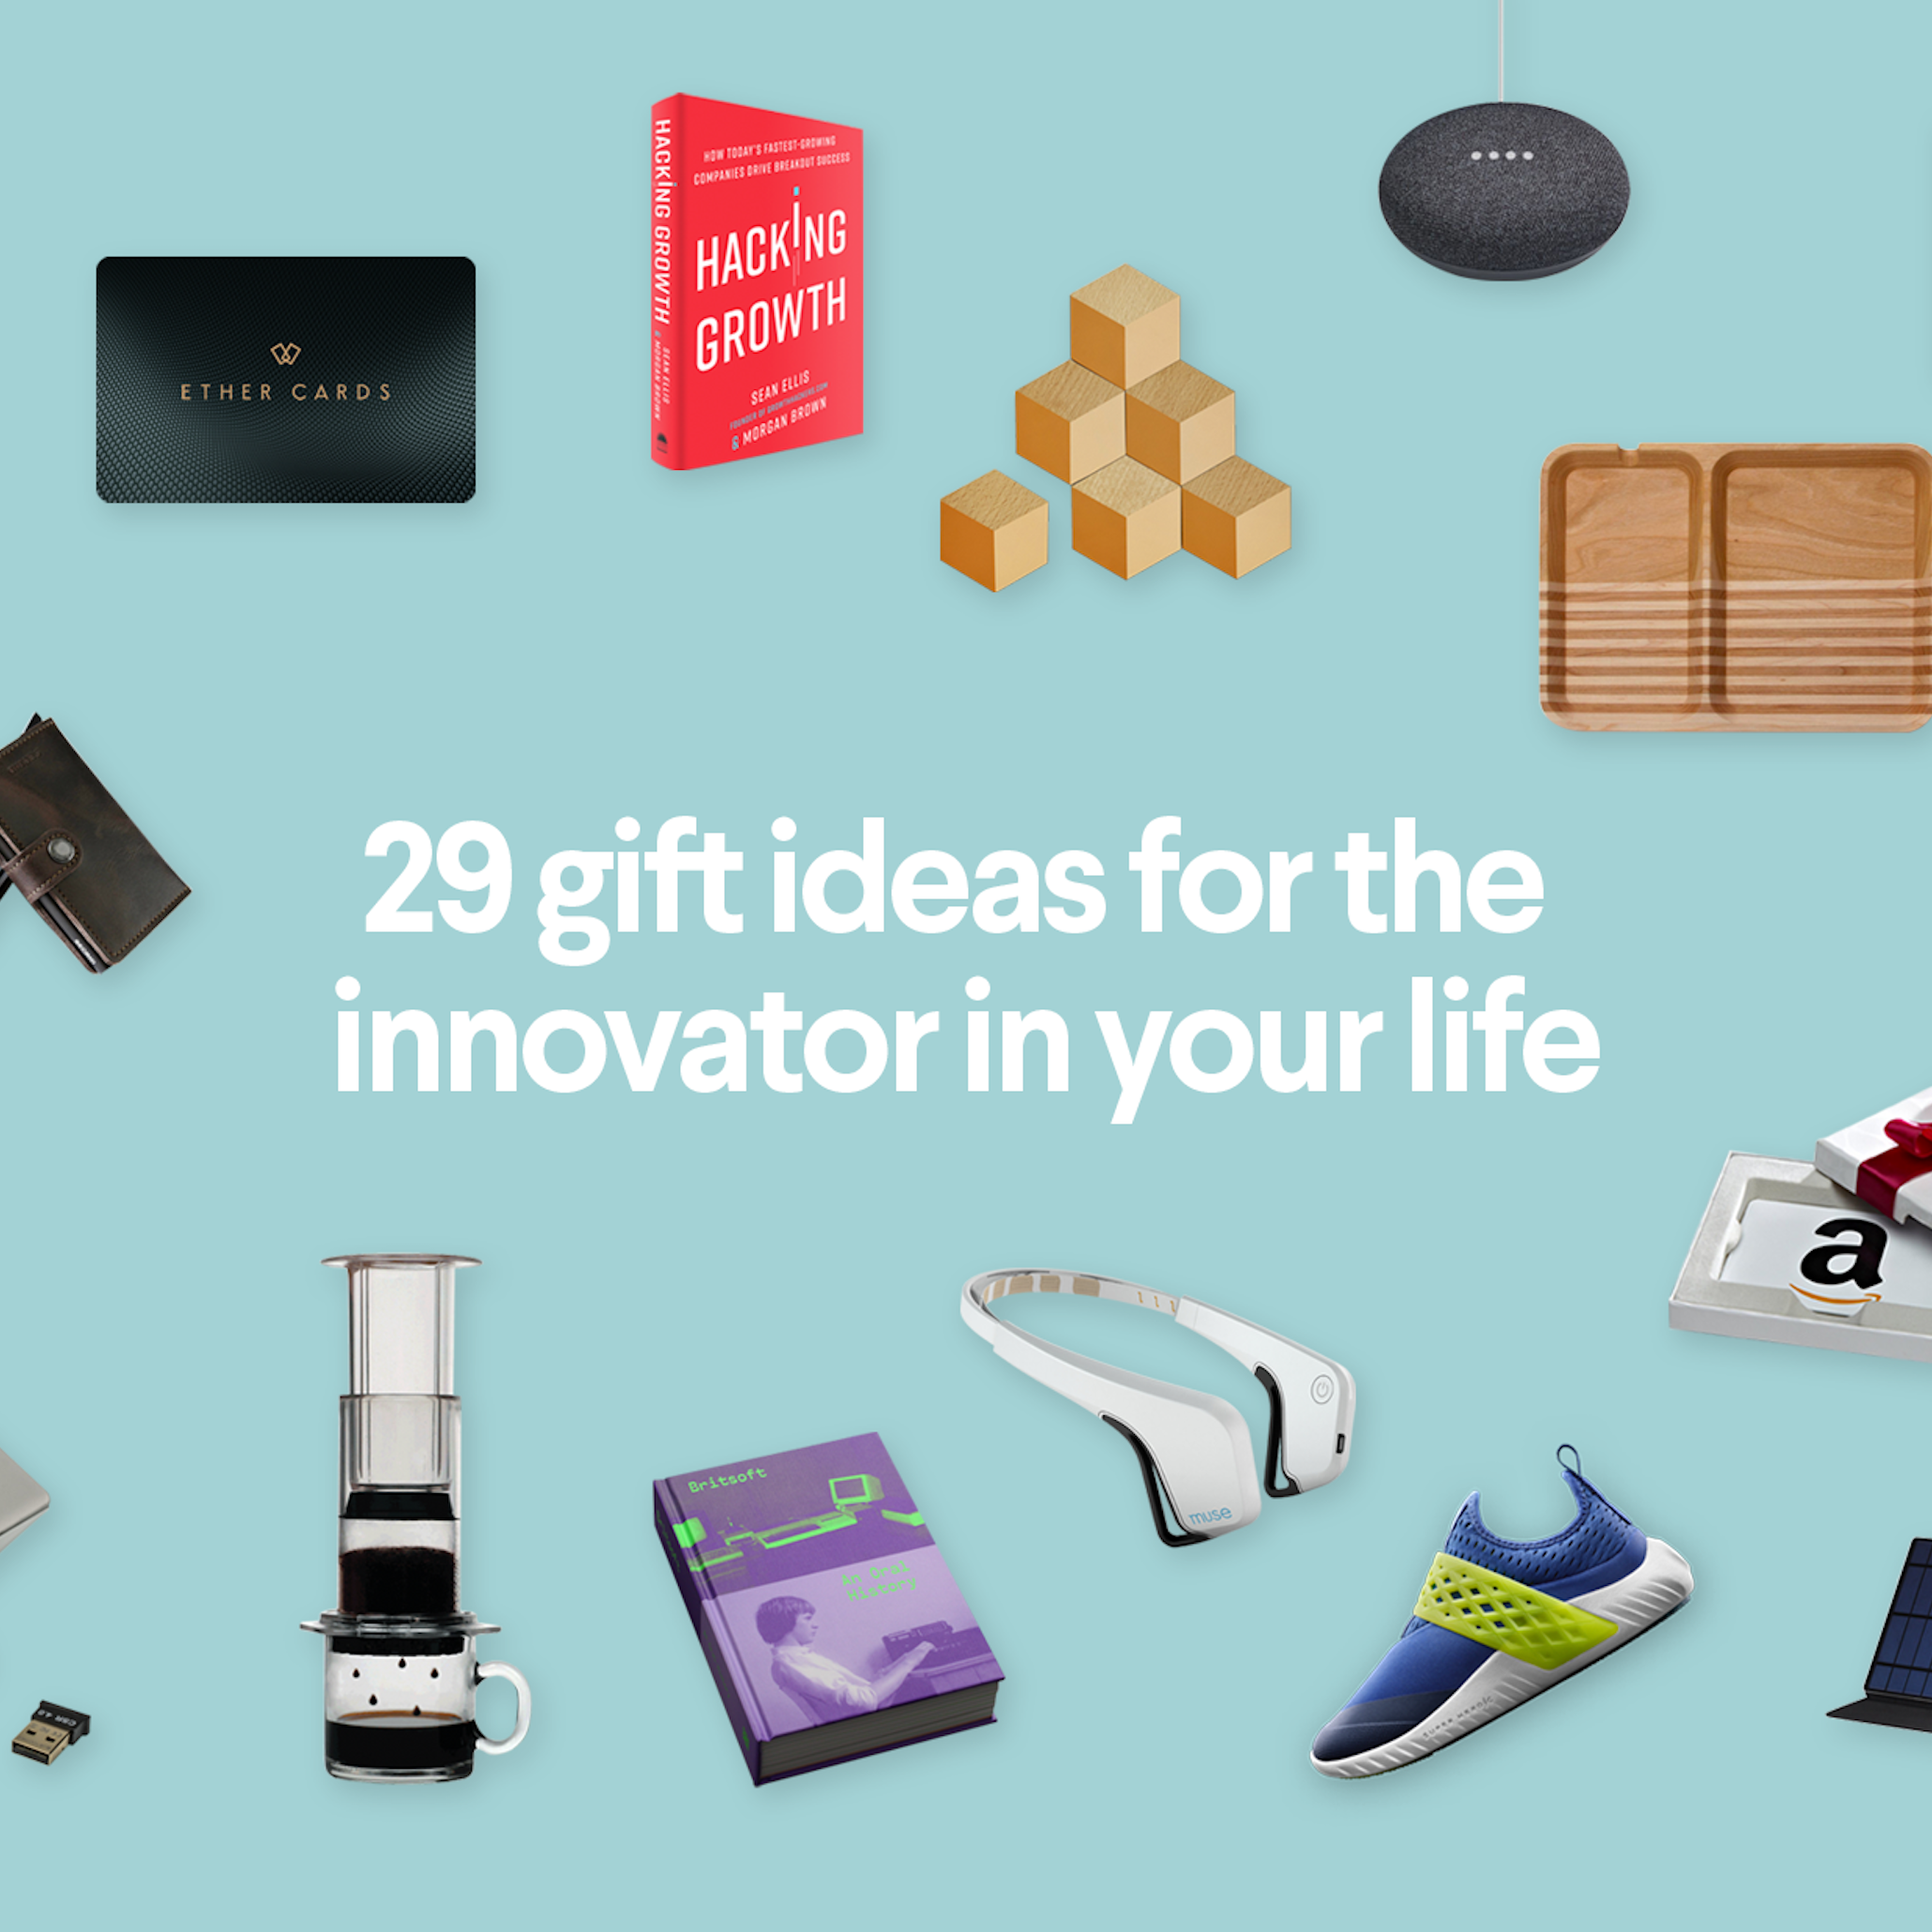 29 gift ideas for the innovator in your life - 99designs